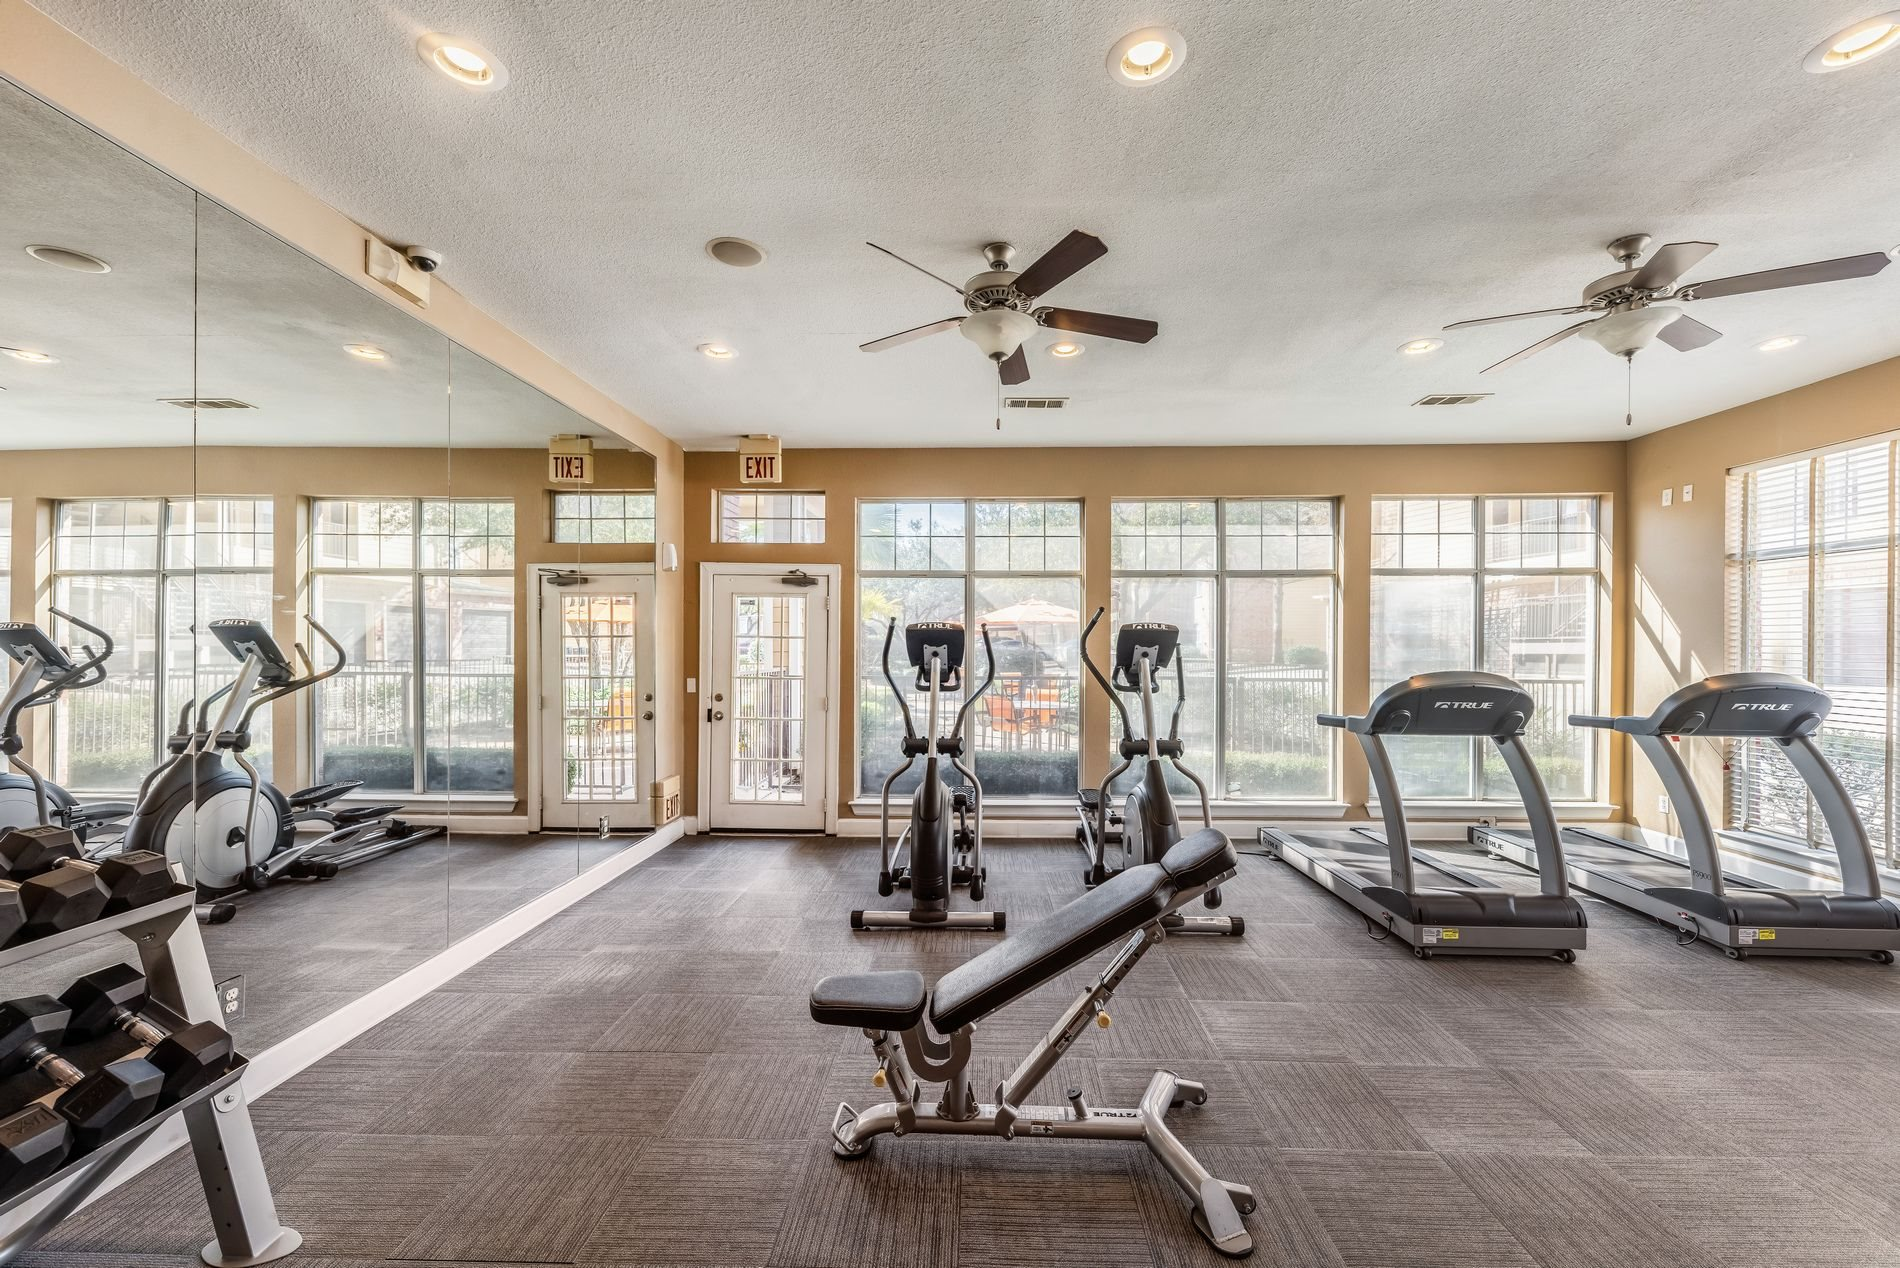 Fitness Center at Station 3700 Apartment Homes in Euless, Texas